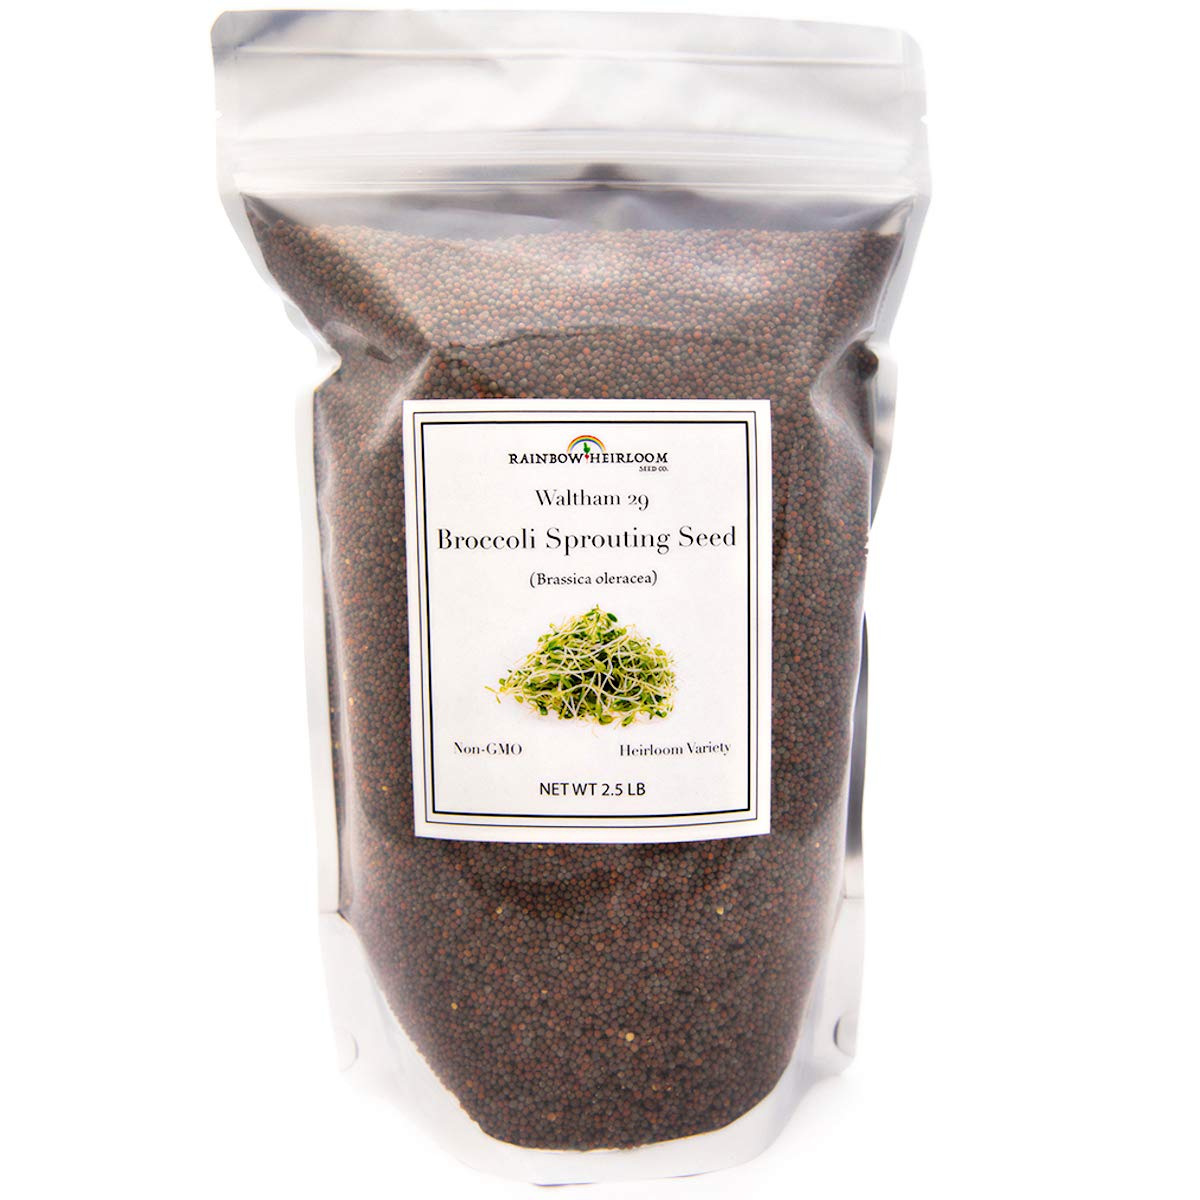 Broccoli Sprouting Seeds for Broccoli Sprouts & Microgreens   Waltham 29 Variety   Non GMO Heirloom Seeds   2.5 LB Resealable Bag   Perfect for Sprouting Jar & Seed Tray   Rainbow Heirloom Seed Co. by Rainbow Heirloom Seed Co.